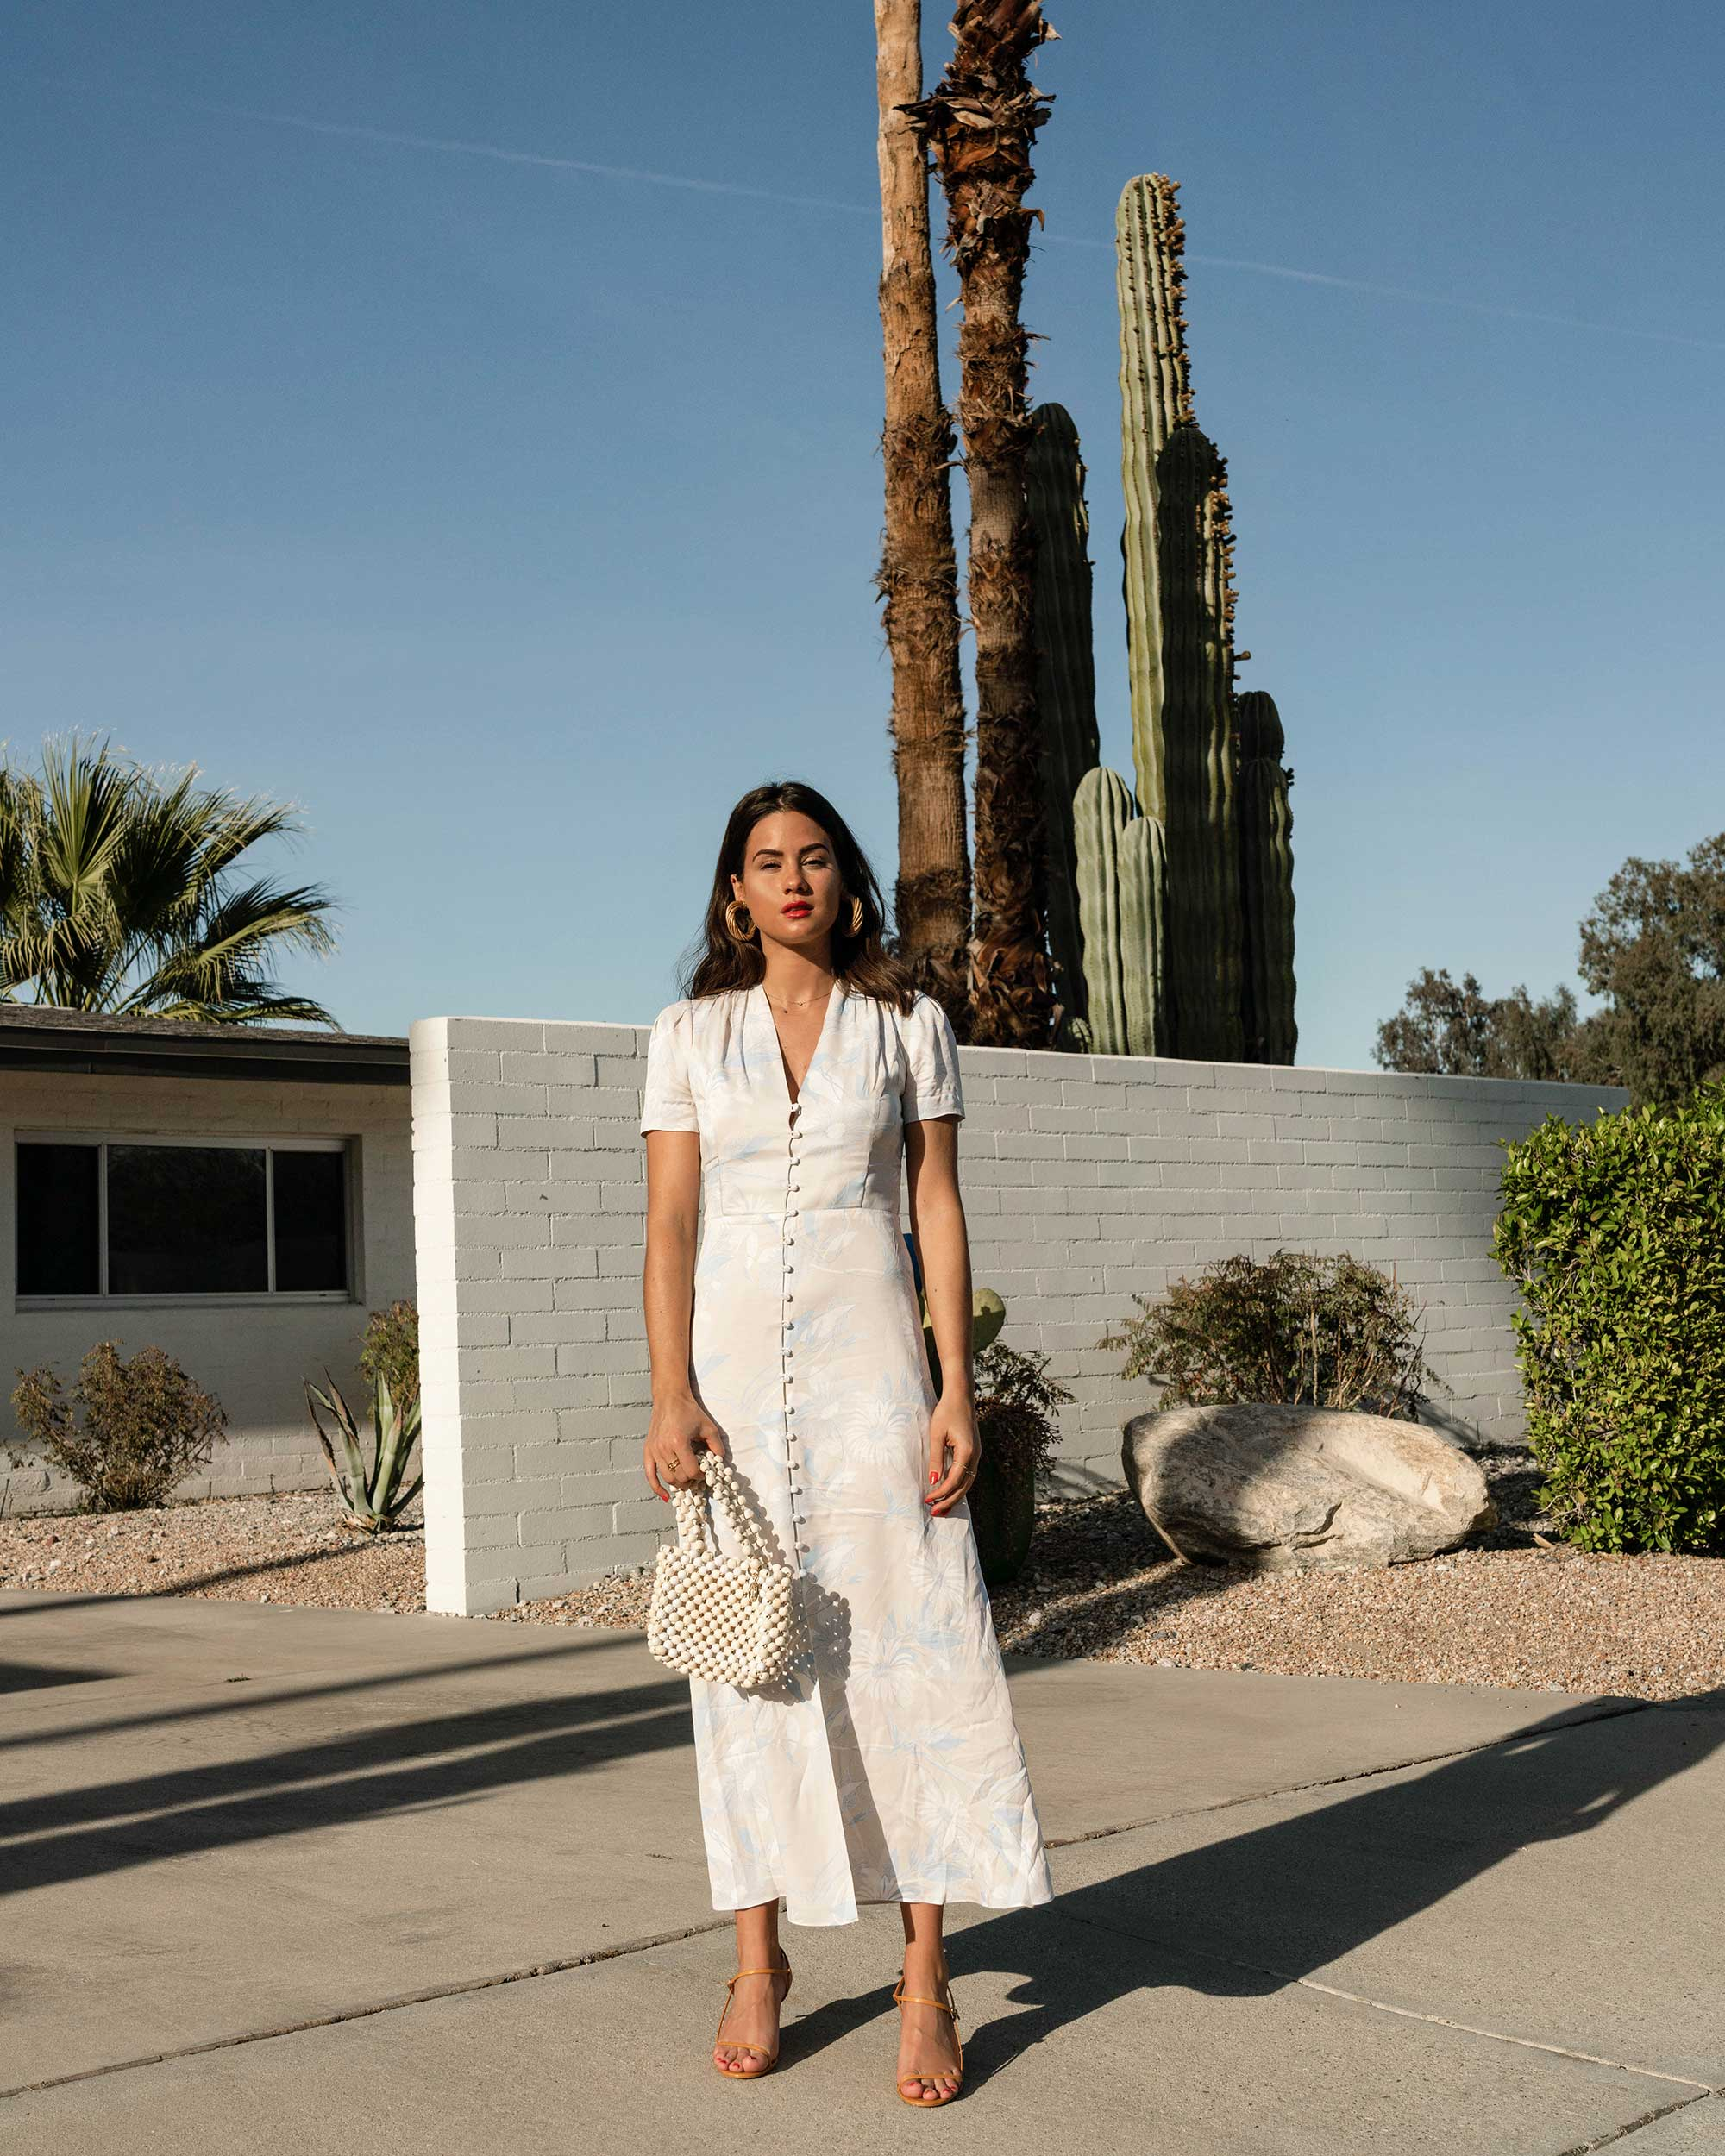 Sarah Butler of Sarah Styles Seattle wears Equipment Gaetan button front floral midi dress and ROSANTICA Patti beaded tote in Palm Springs Outfit | @sarahchristine -9.jpg